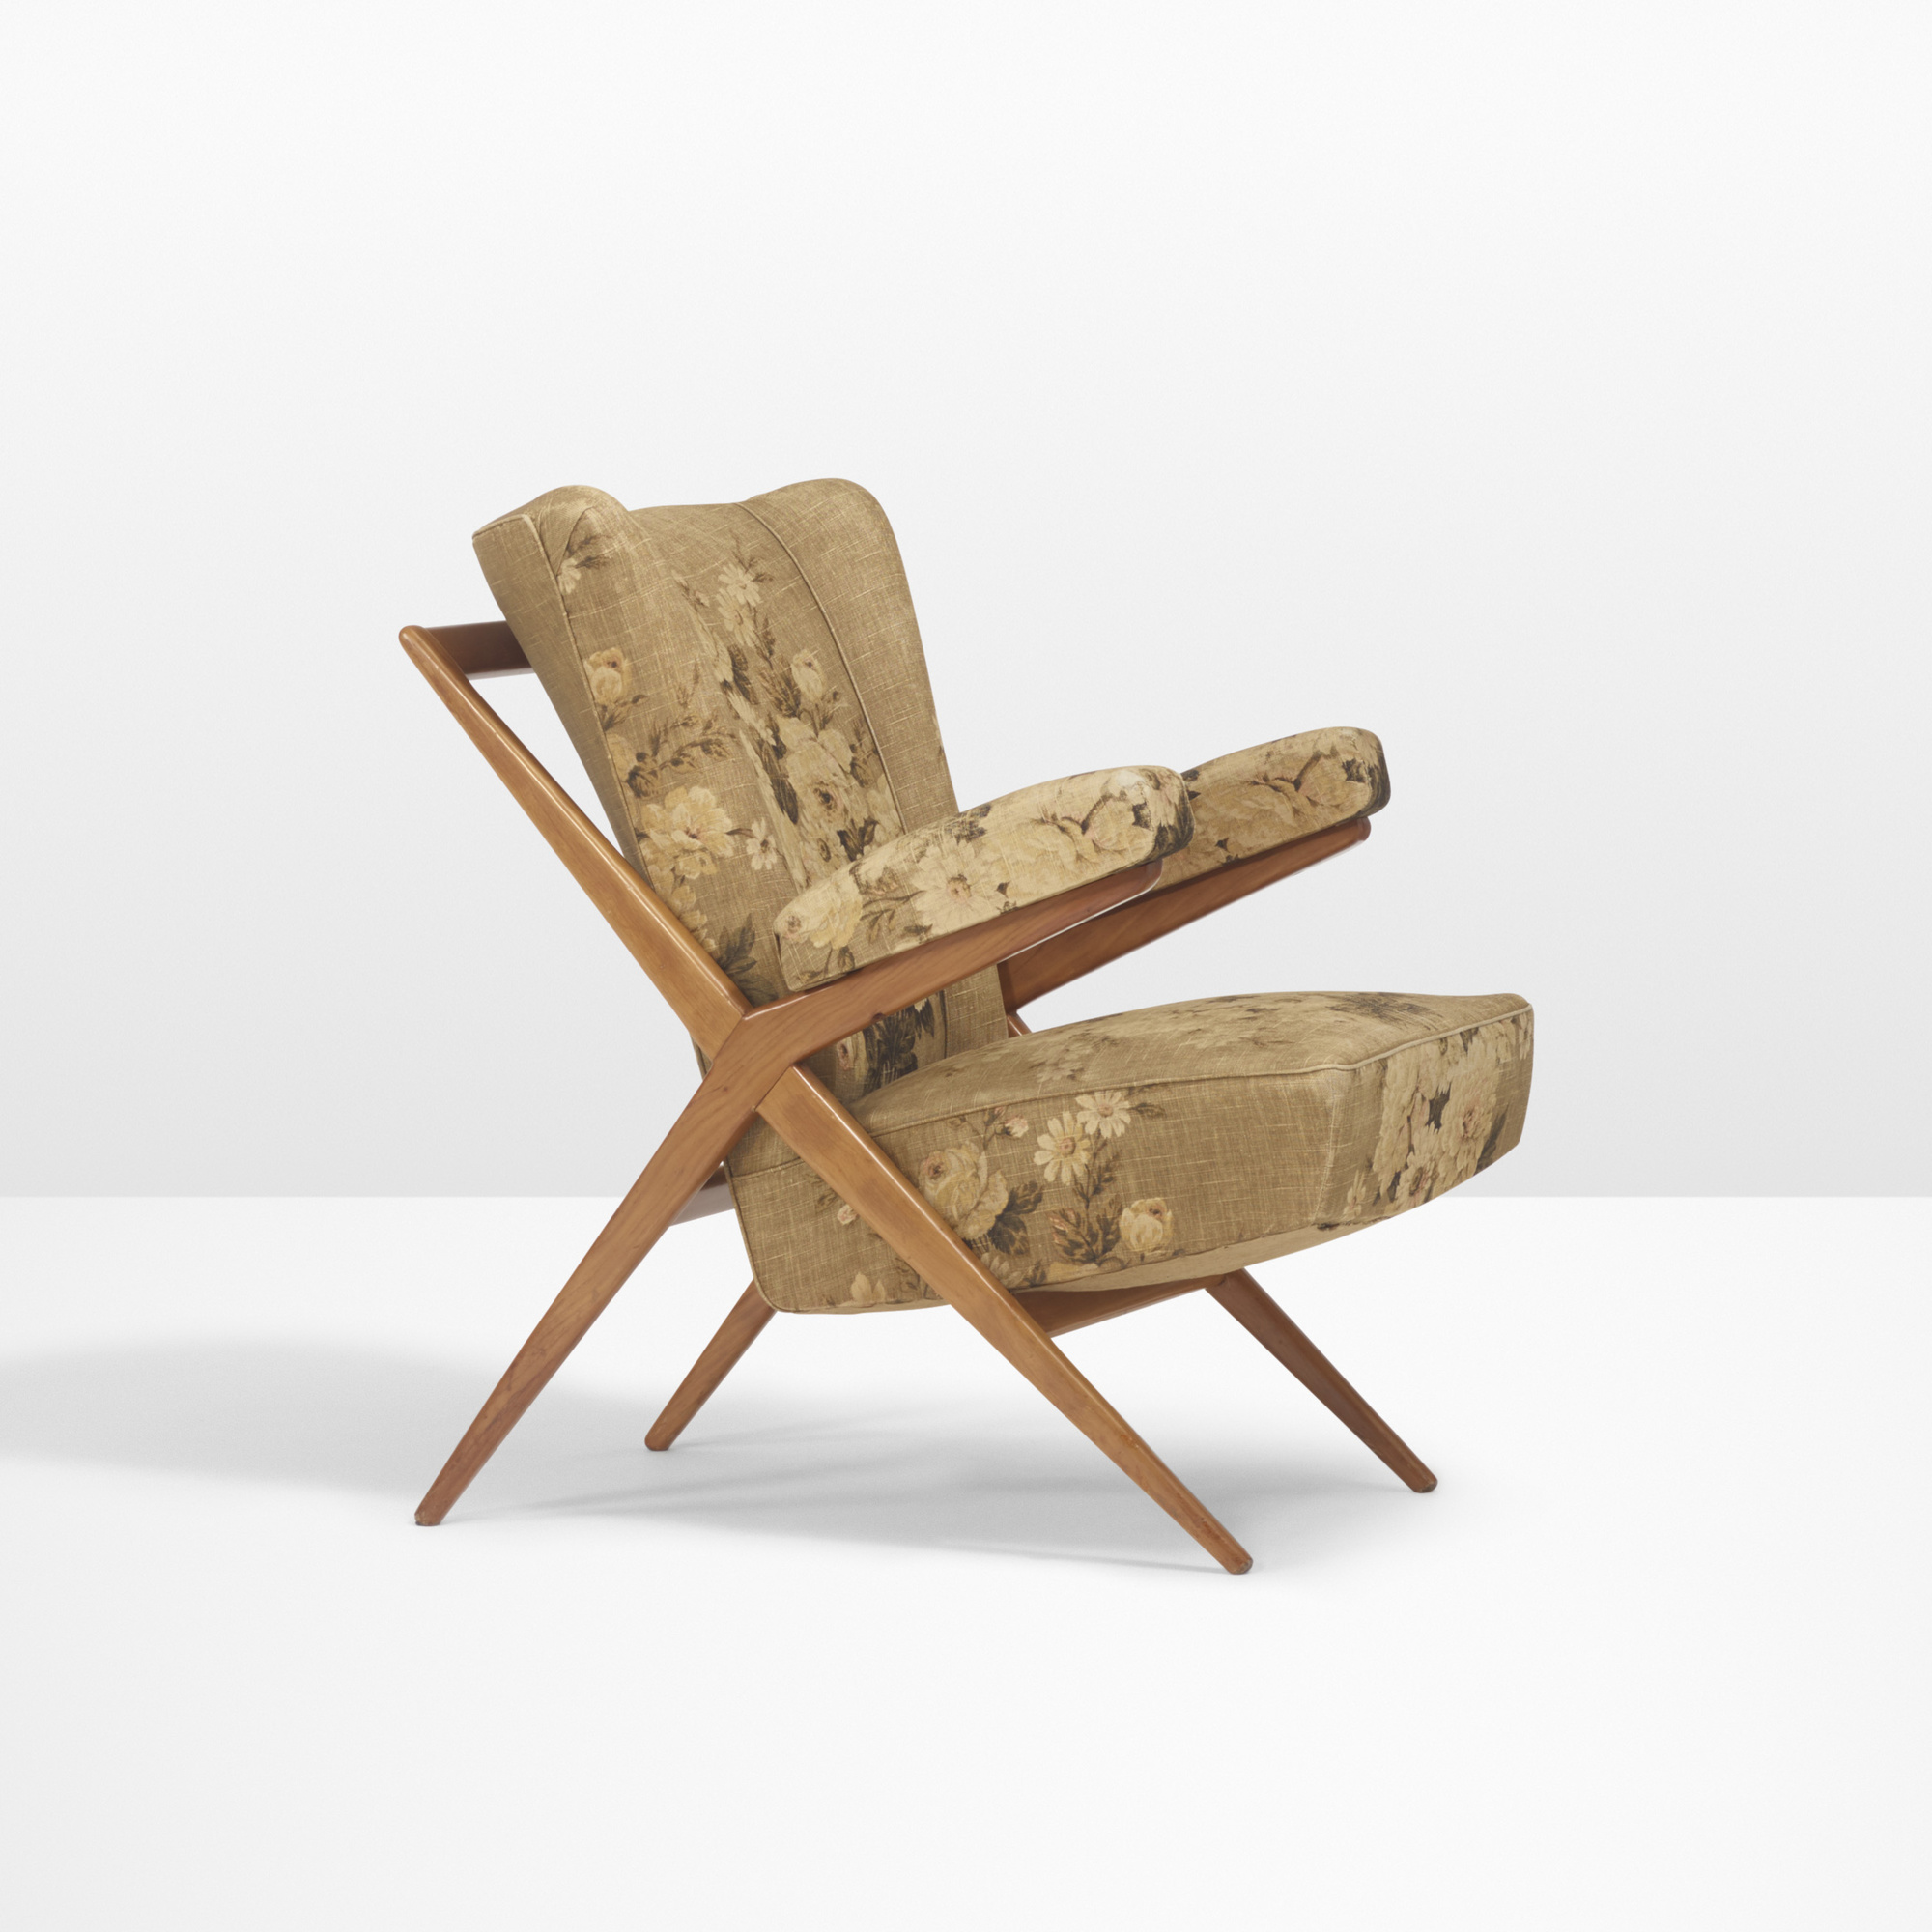 29: Franco Albini / Lounge chair, model Ca 832 (1 of 3)